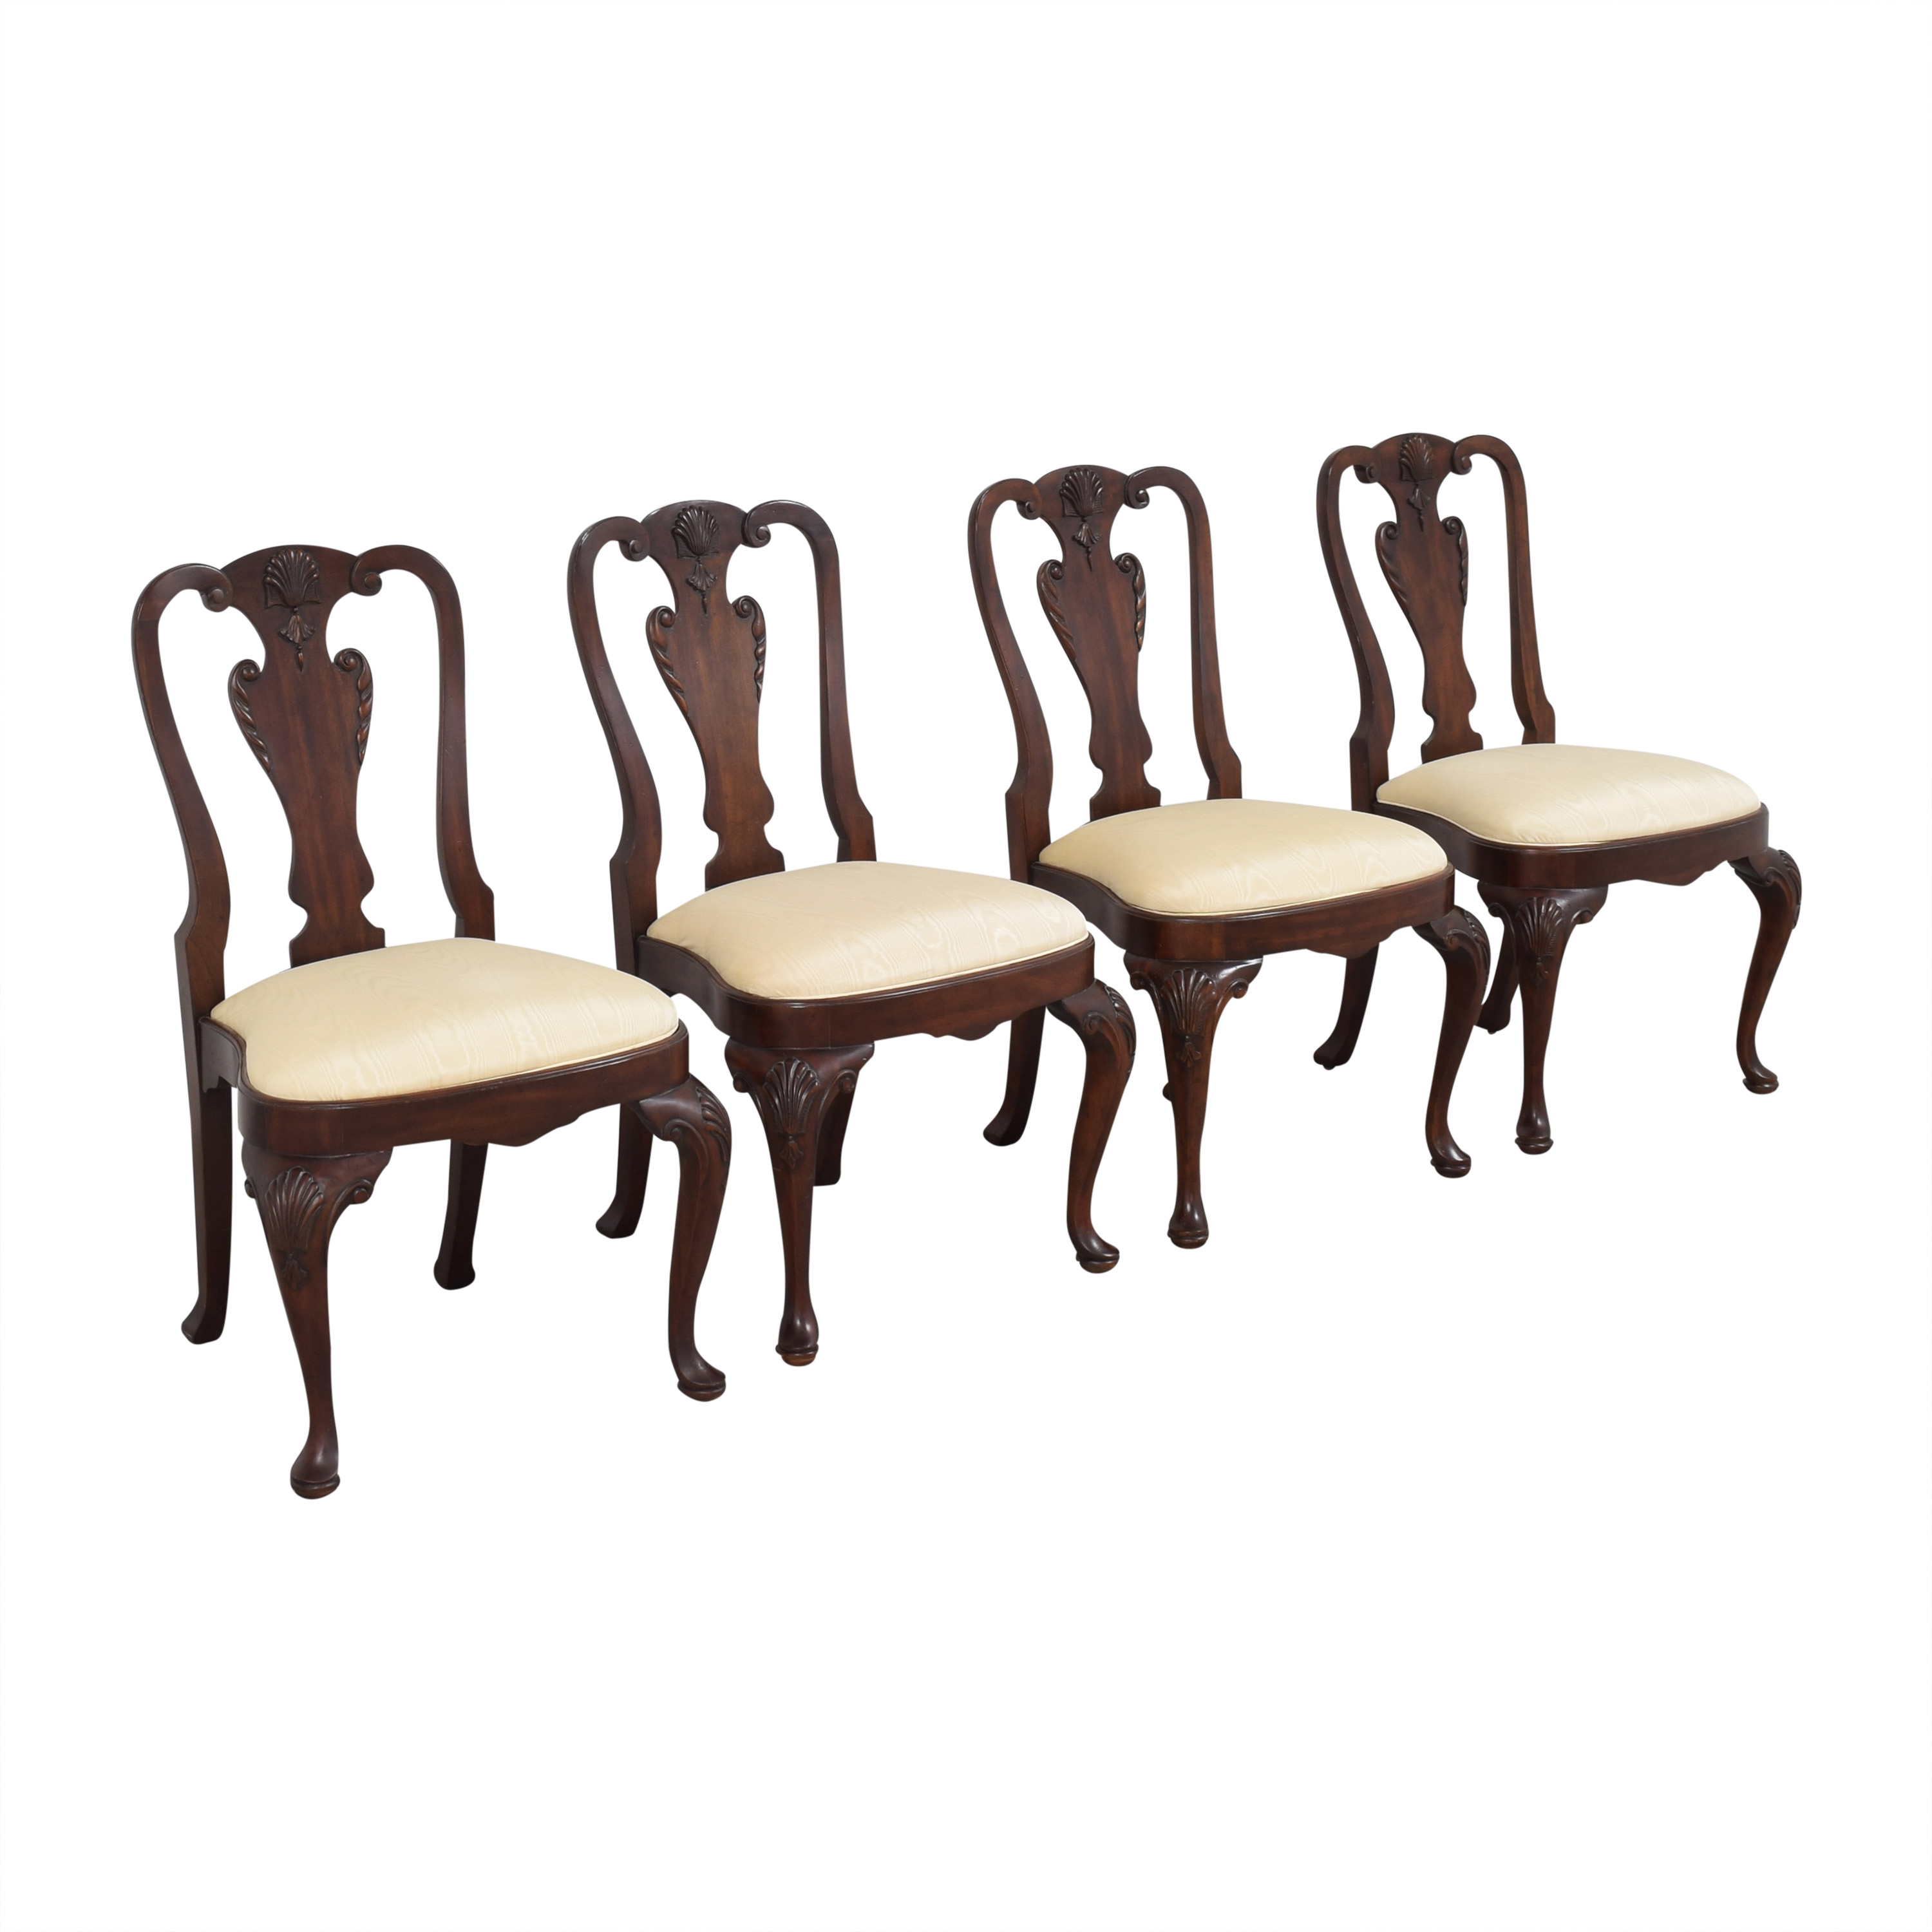 Maitland-Smith Maitland-Smith Regency Dining Chairs dimensions